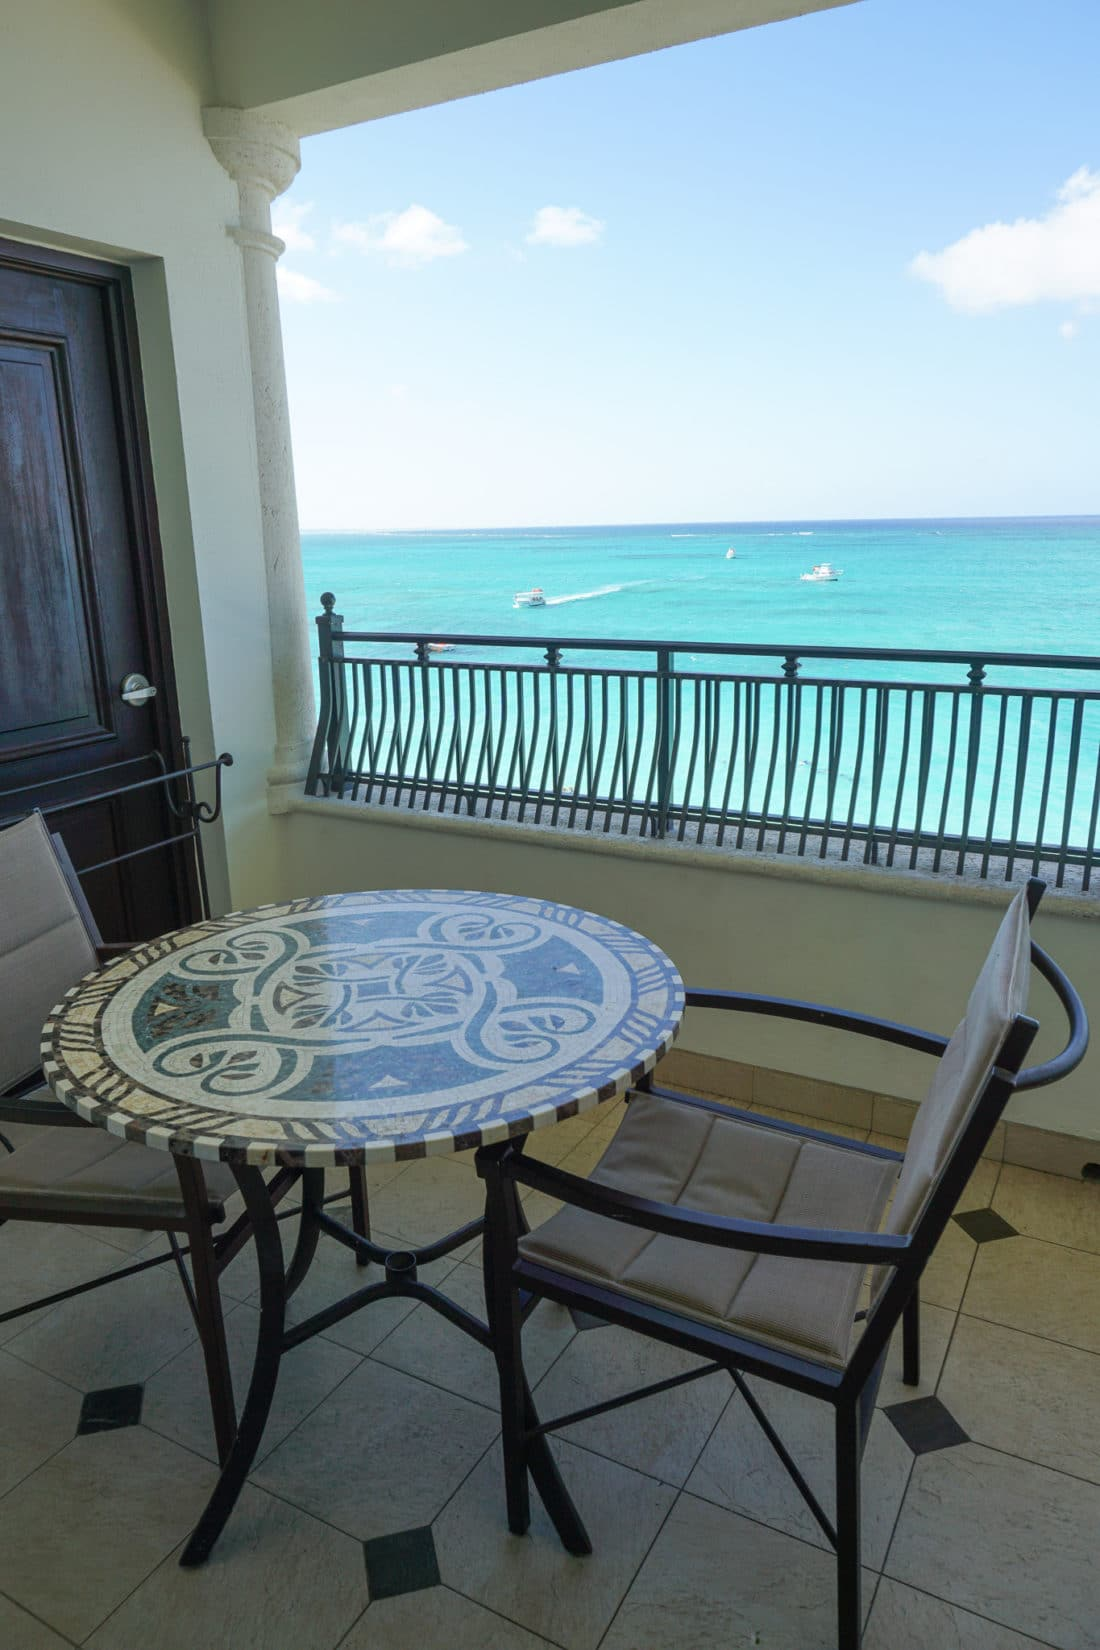 Oceanfront Family Suite Beaches Resorts in Turks and Caicos Balcony Table. Paradise does exist, and it's only a plane ride away. Take a look inside our suite in this Oceanfront Family Suite Room Tour at Beaches Resorts in Turks and Caicos.